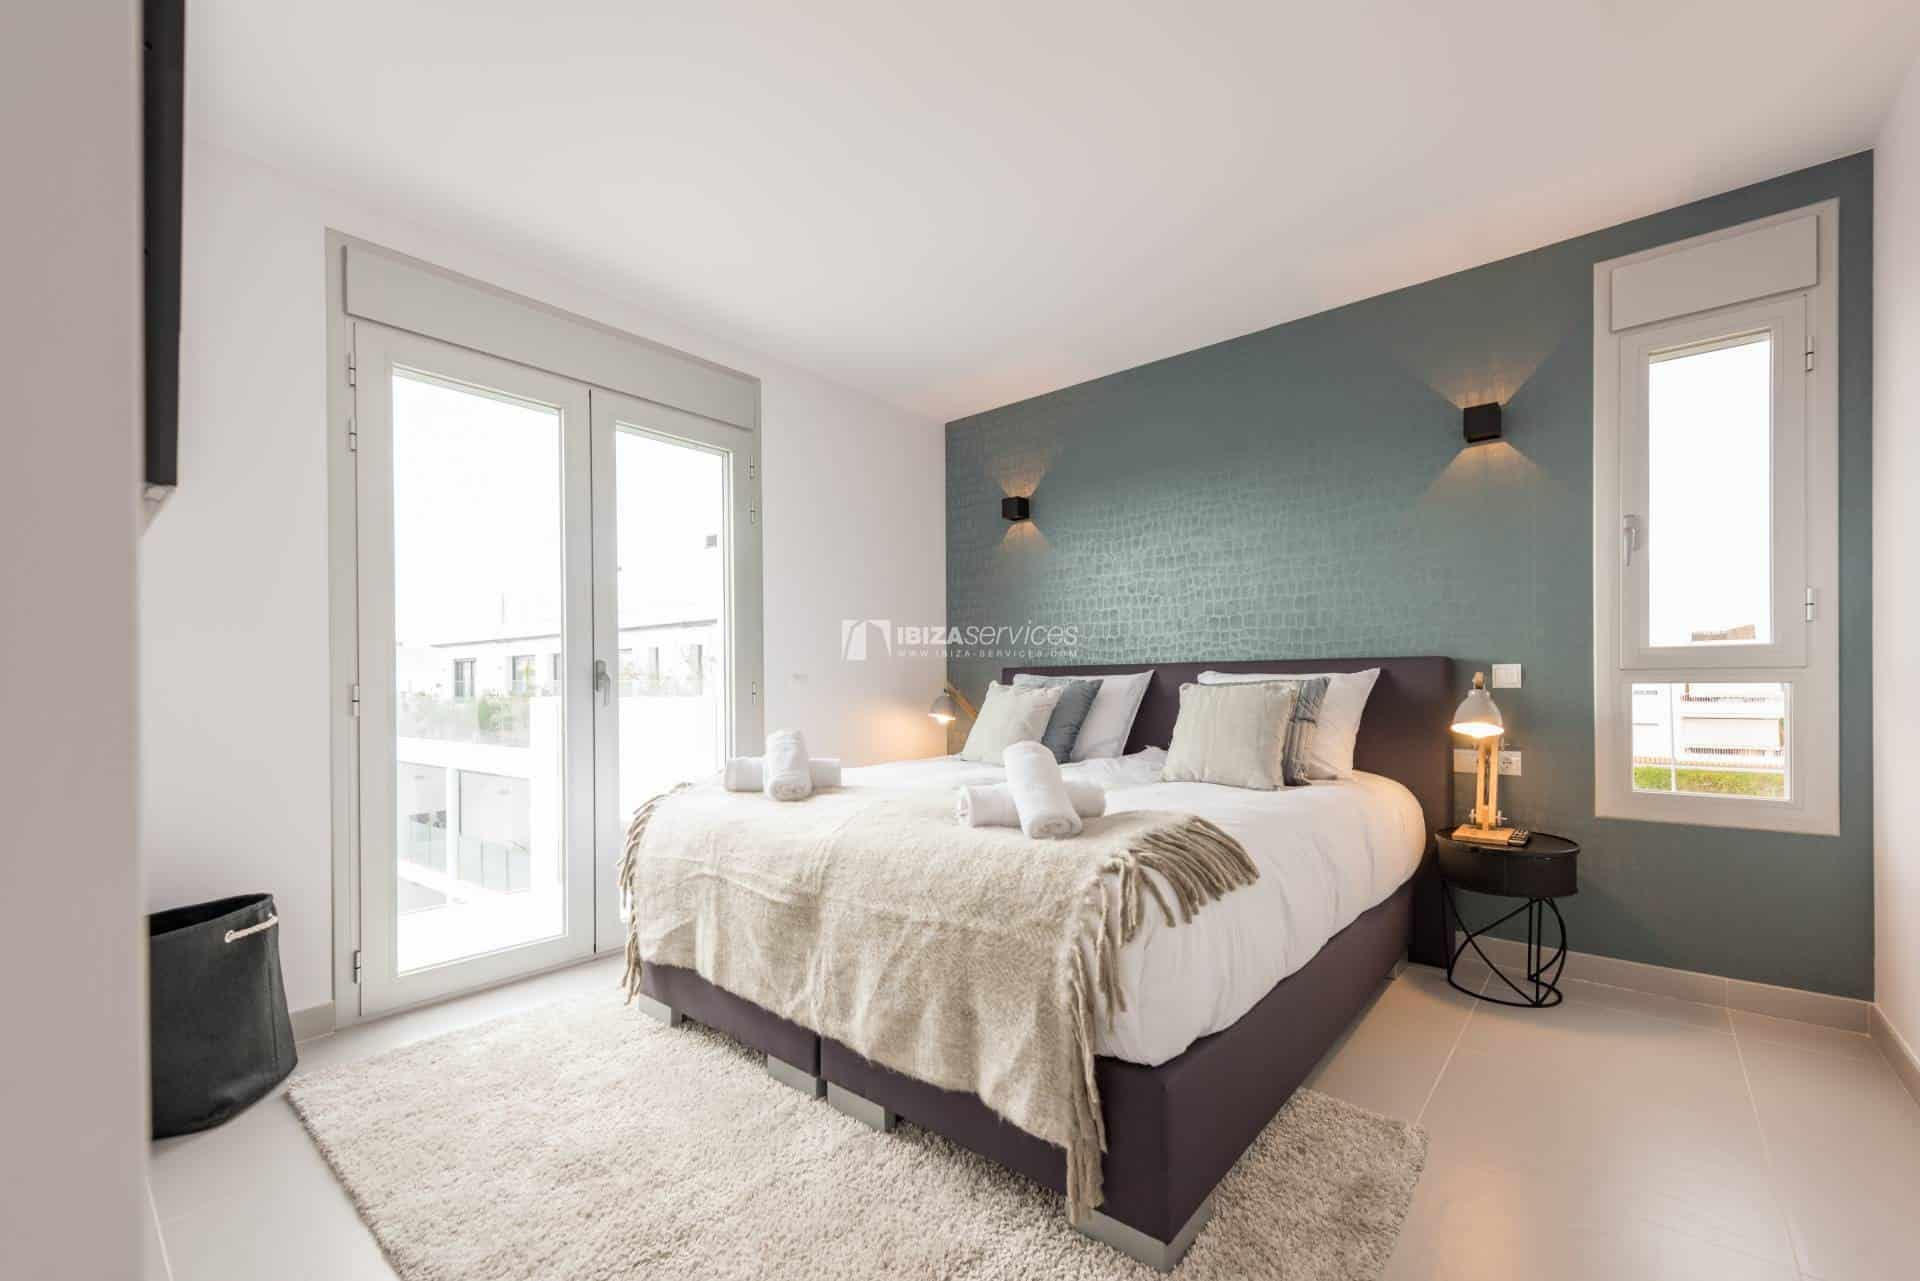 Modern penthouse 4 bedrooms for sale Jesus perspectiva 17